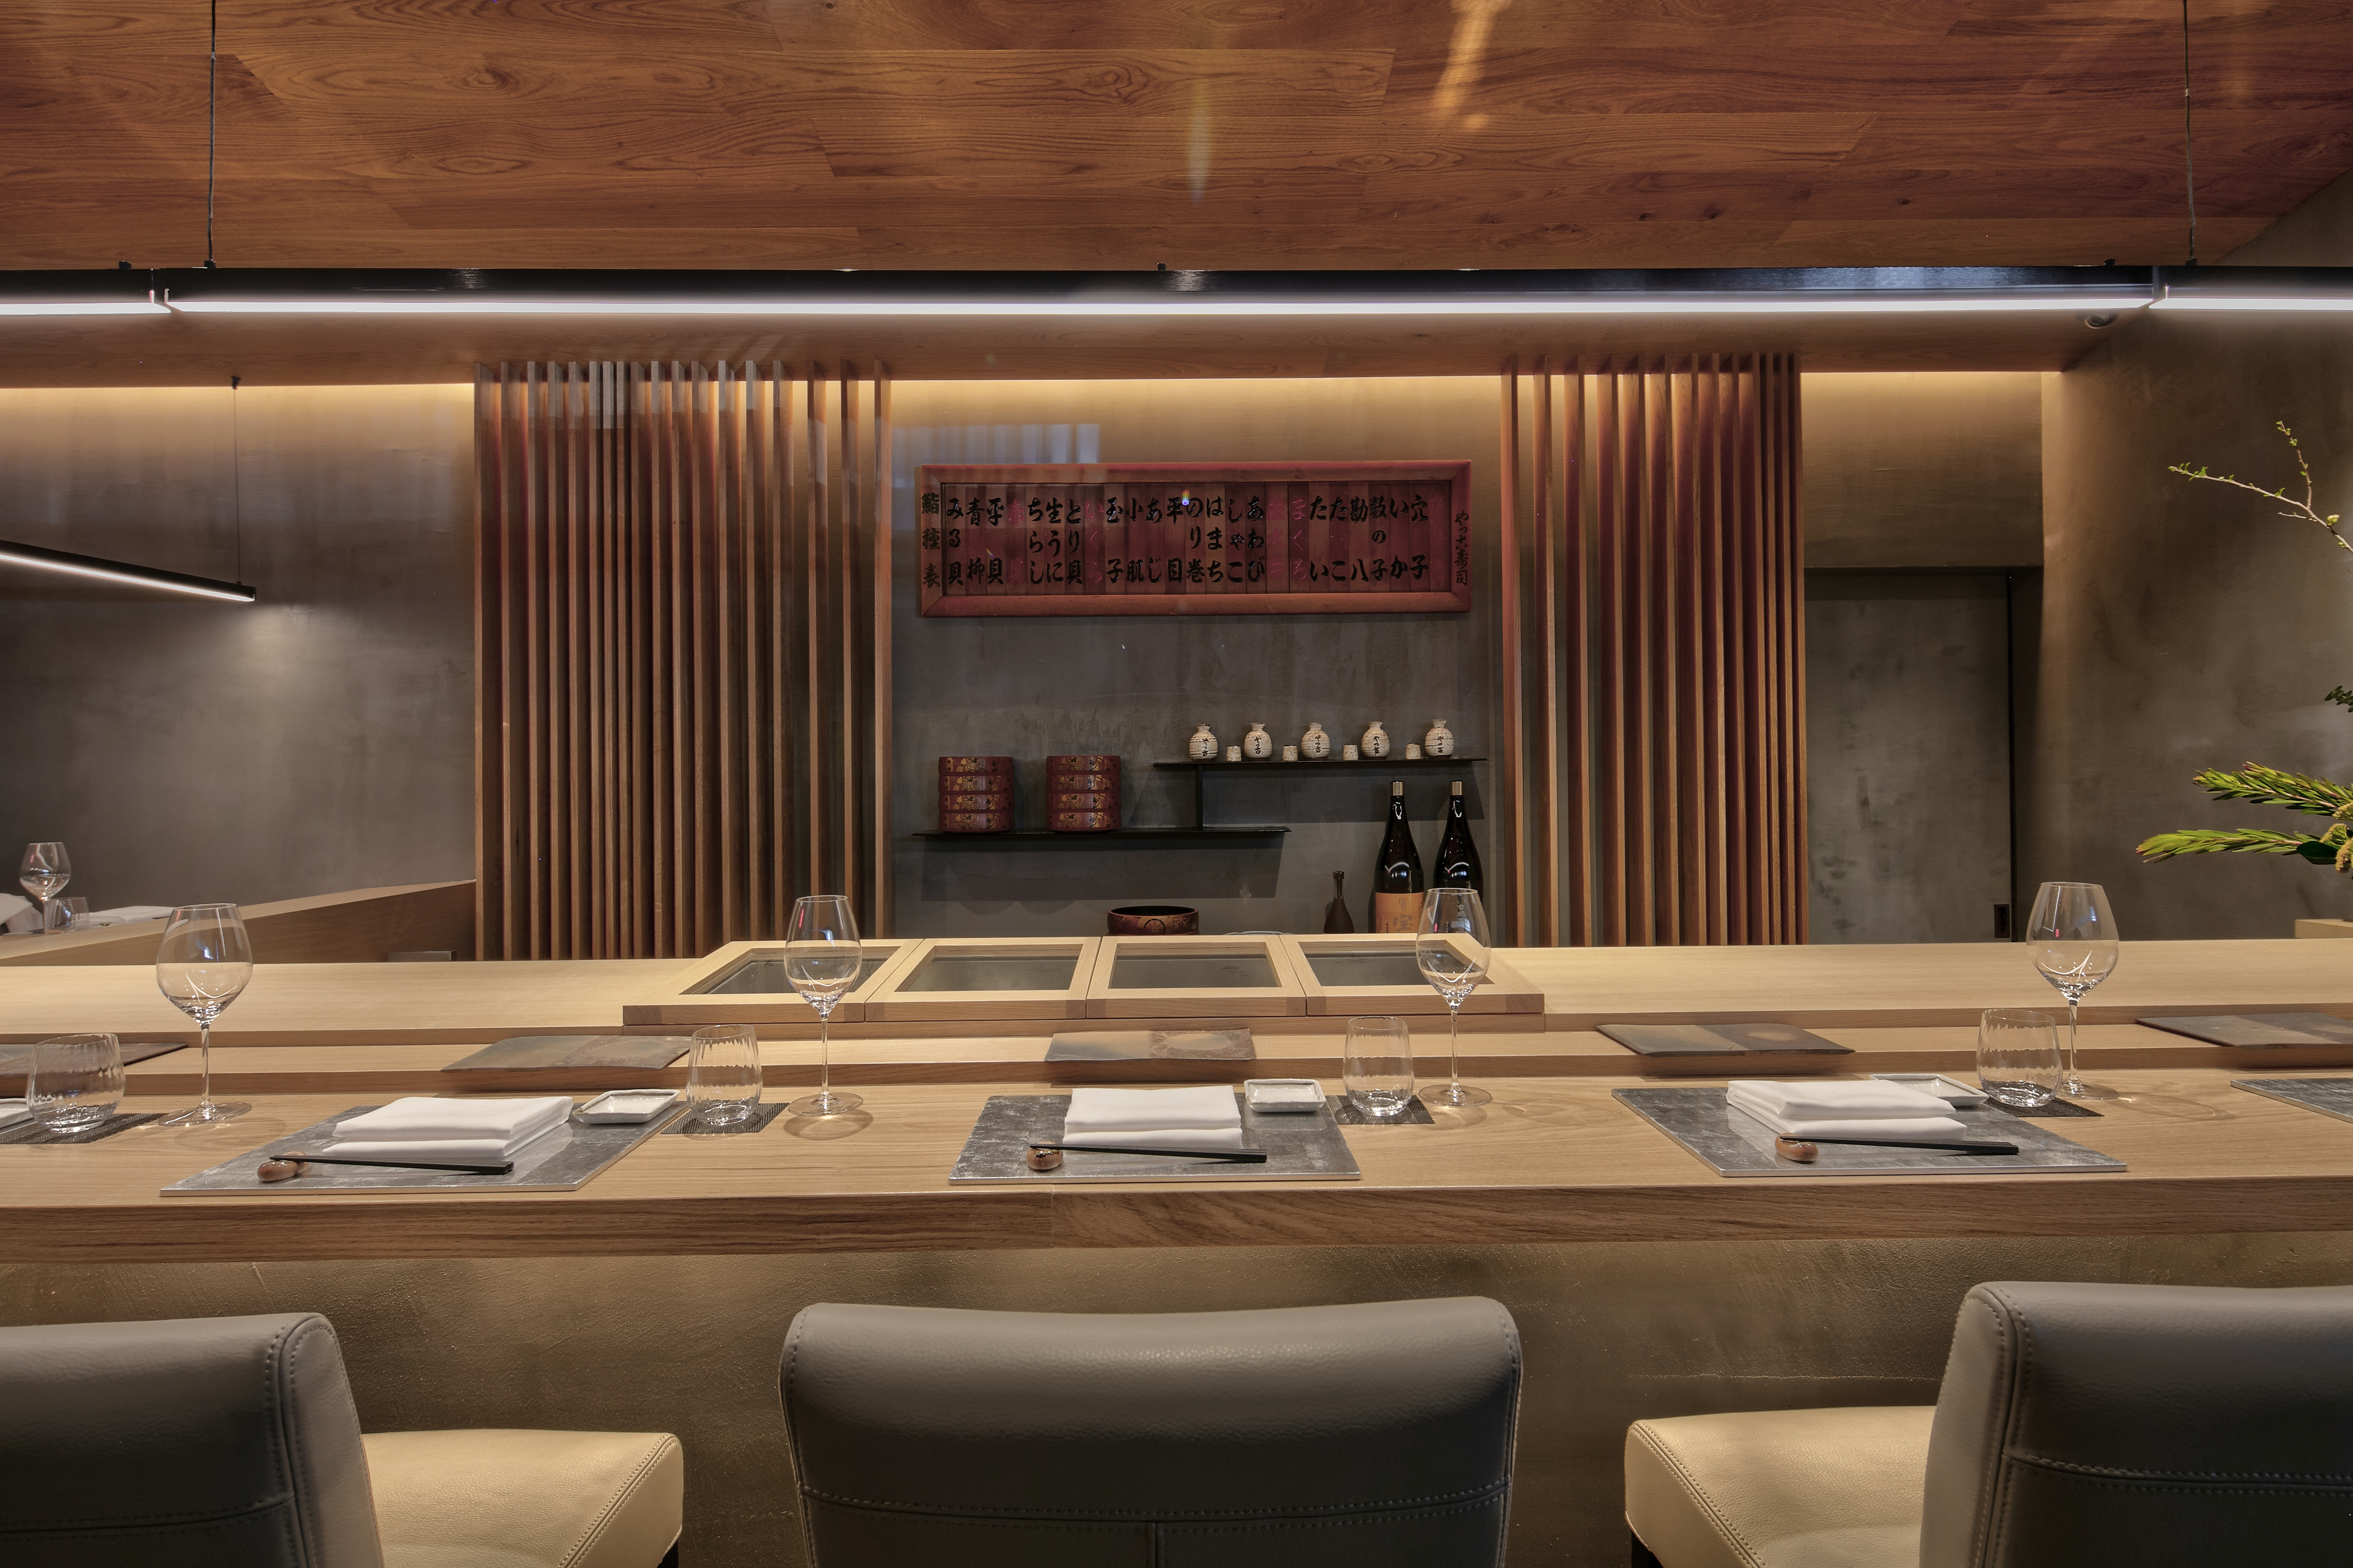 A head-on shot of the back of a sushi counter, with rows of brown chairs, light wood, and heirloom sake glasses on a shelf.